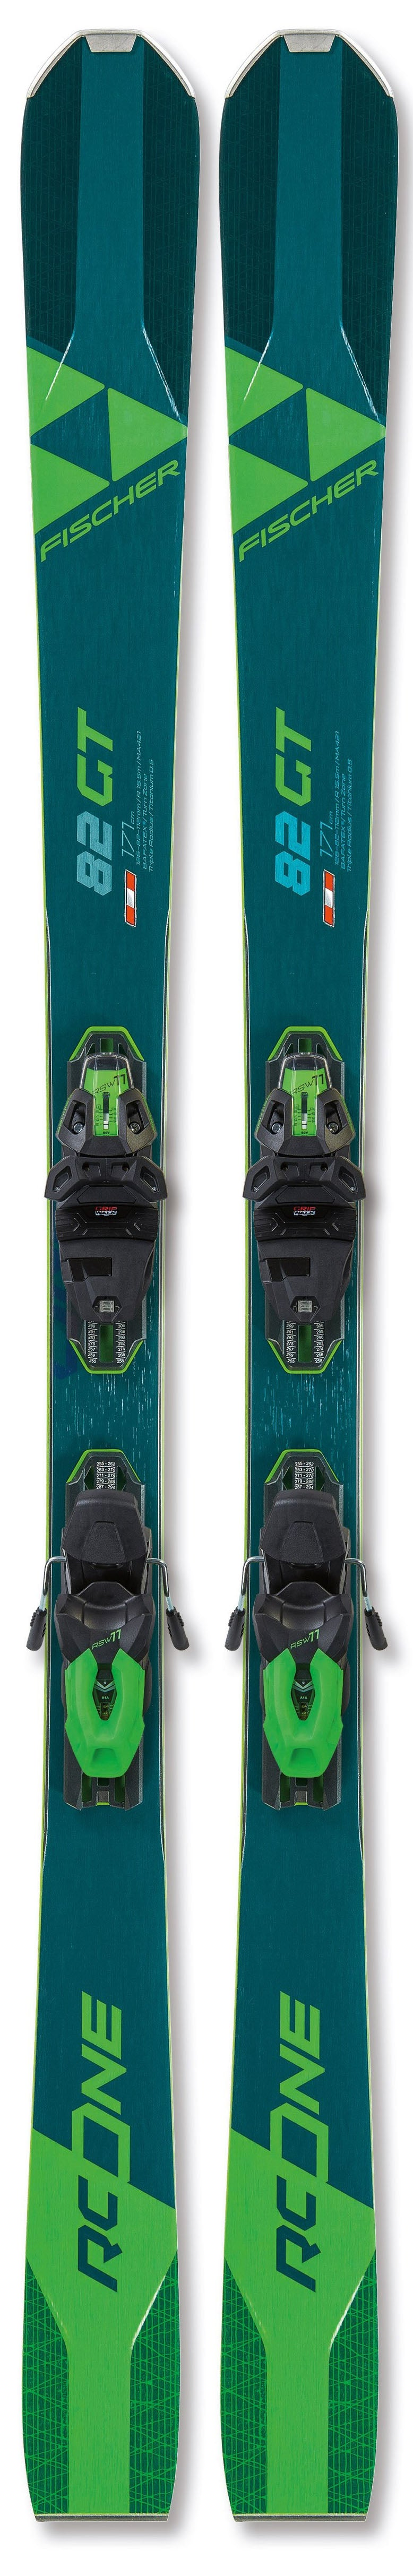 Fischer RC One 82 GT Skis 2021 w/bindings